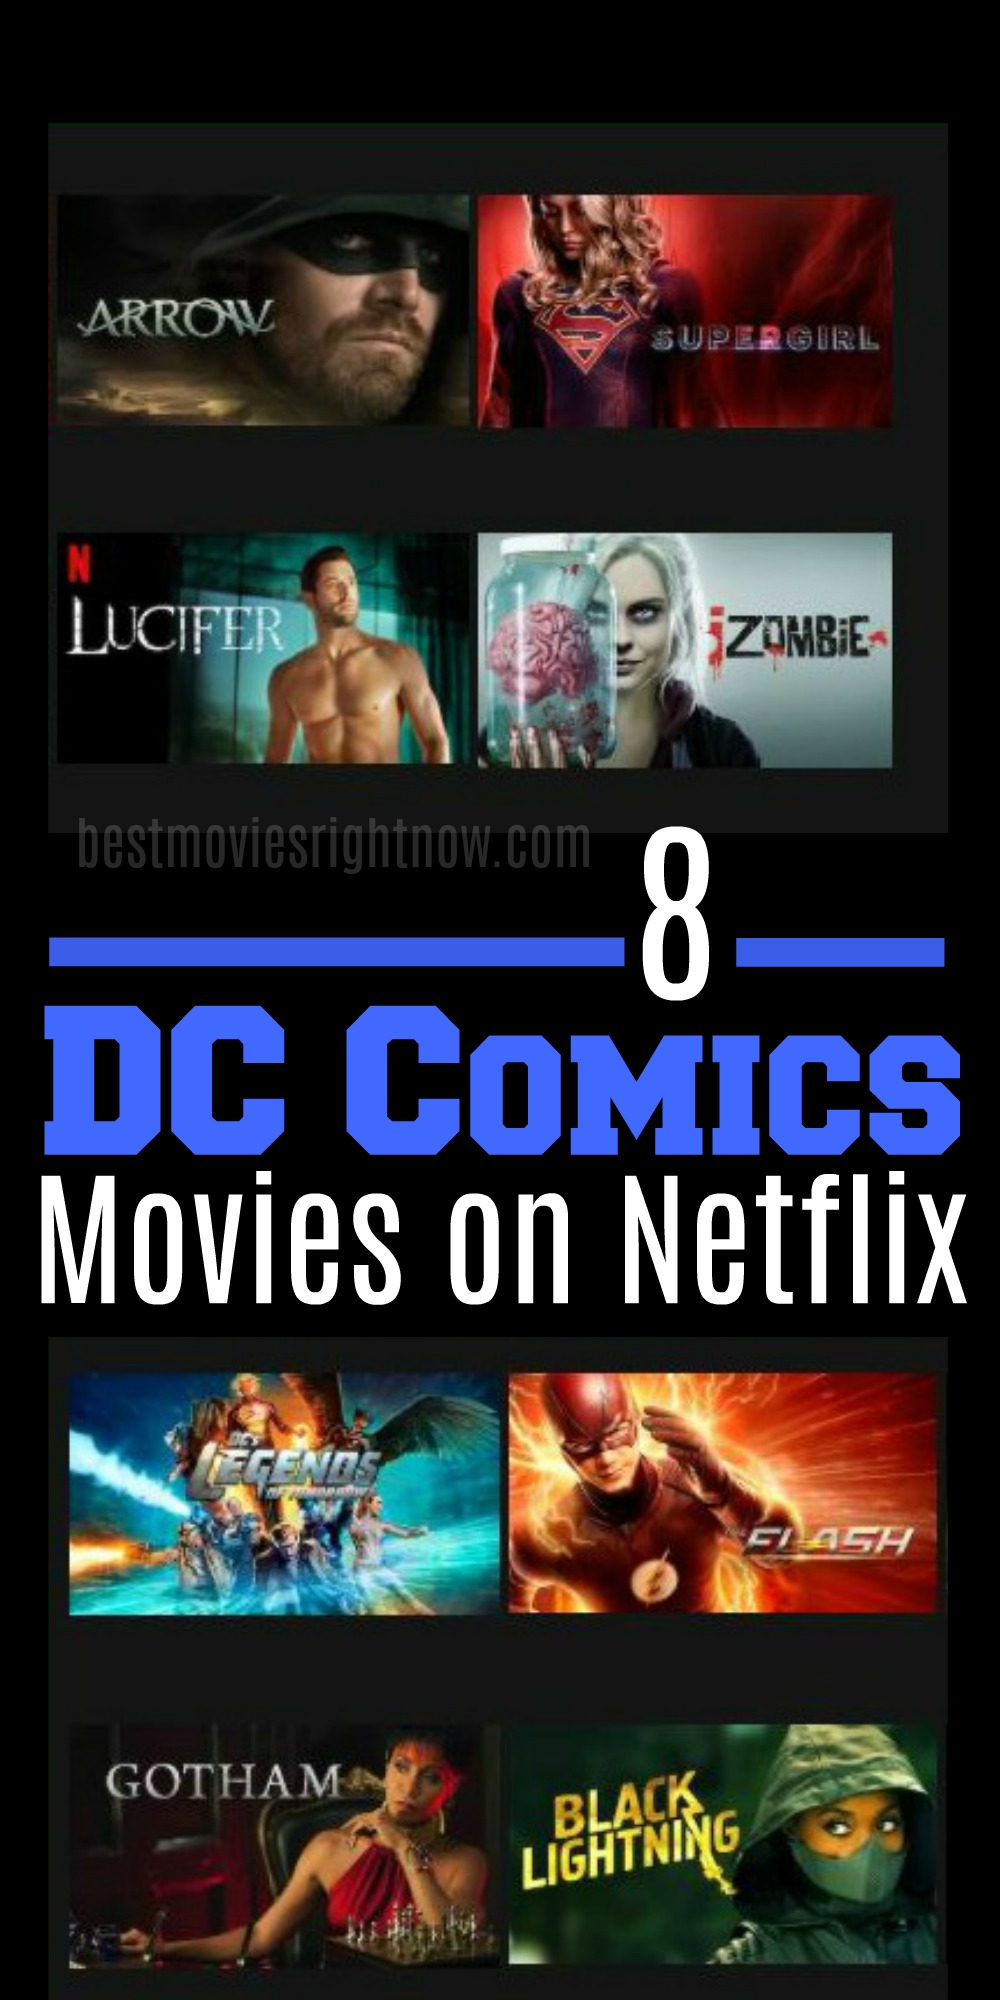 Best DC Comics Shows and Movies on Netflix